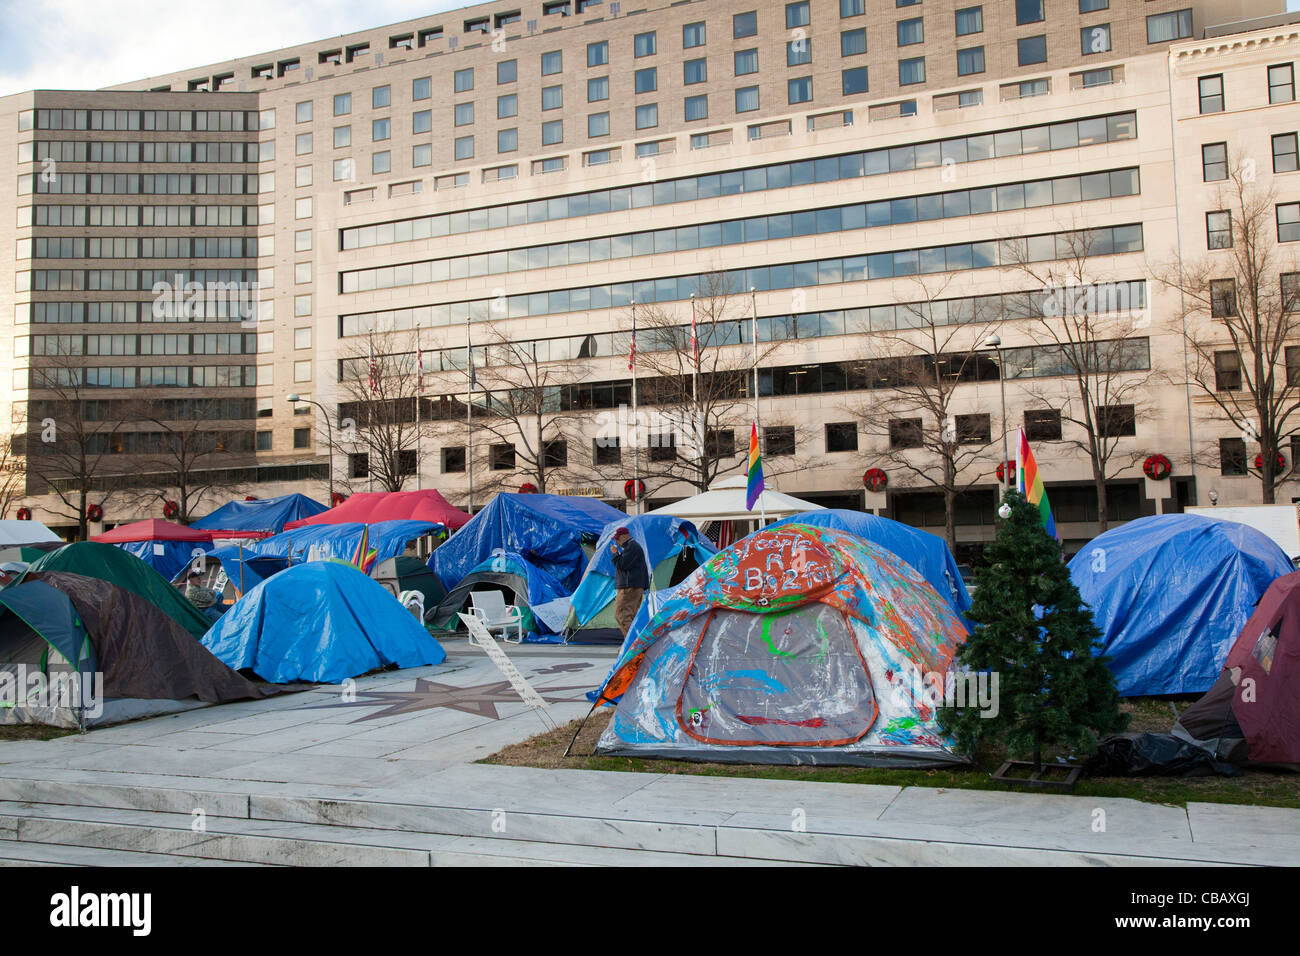 Washington, DC - The Occupy Washington DC camp on Freedom Plaza - Stock Image